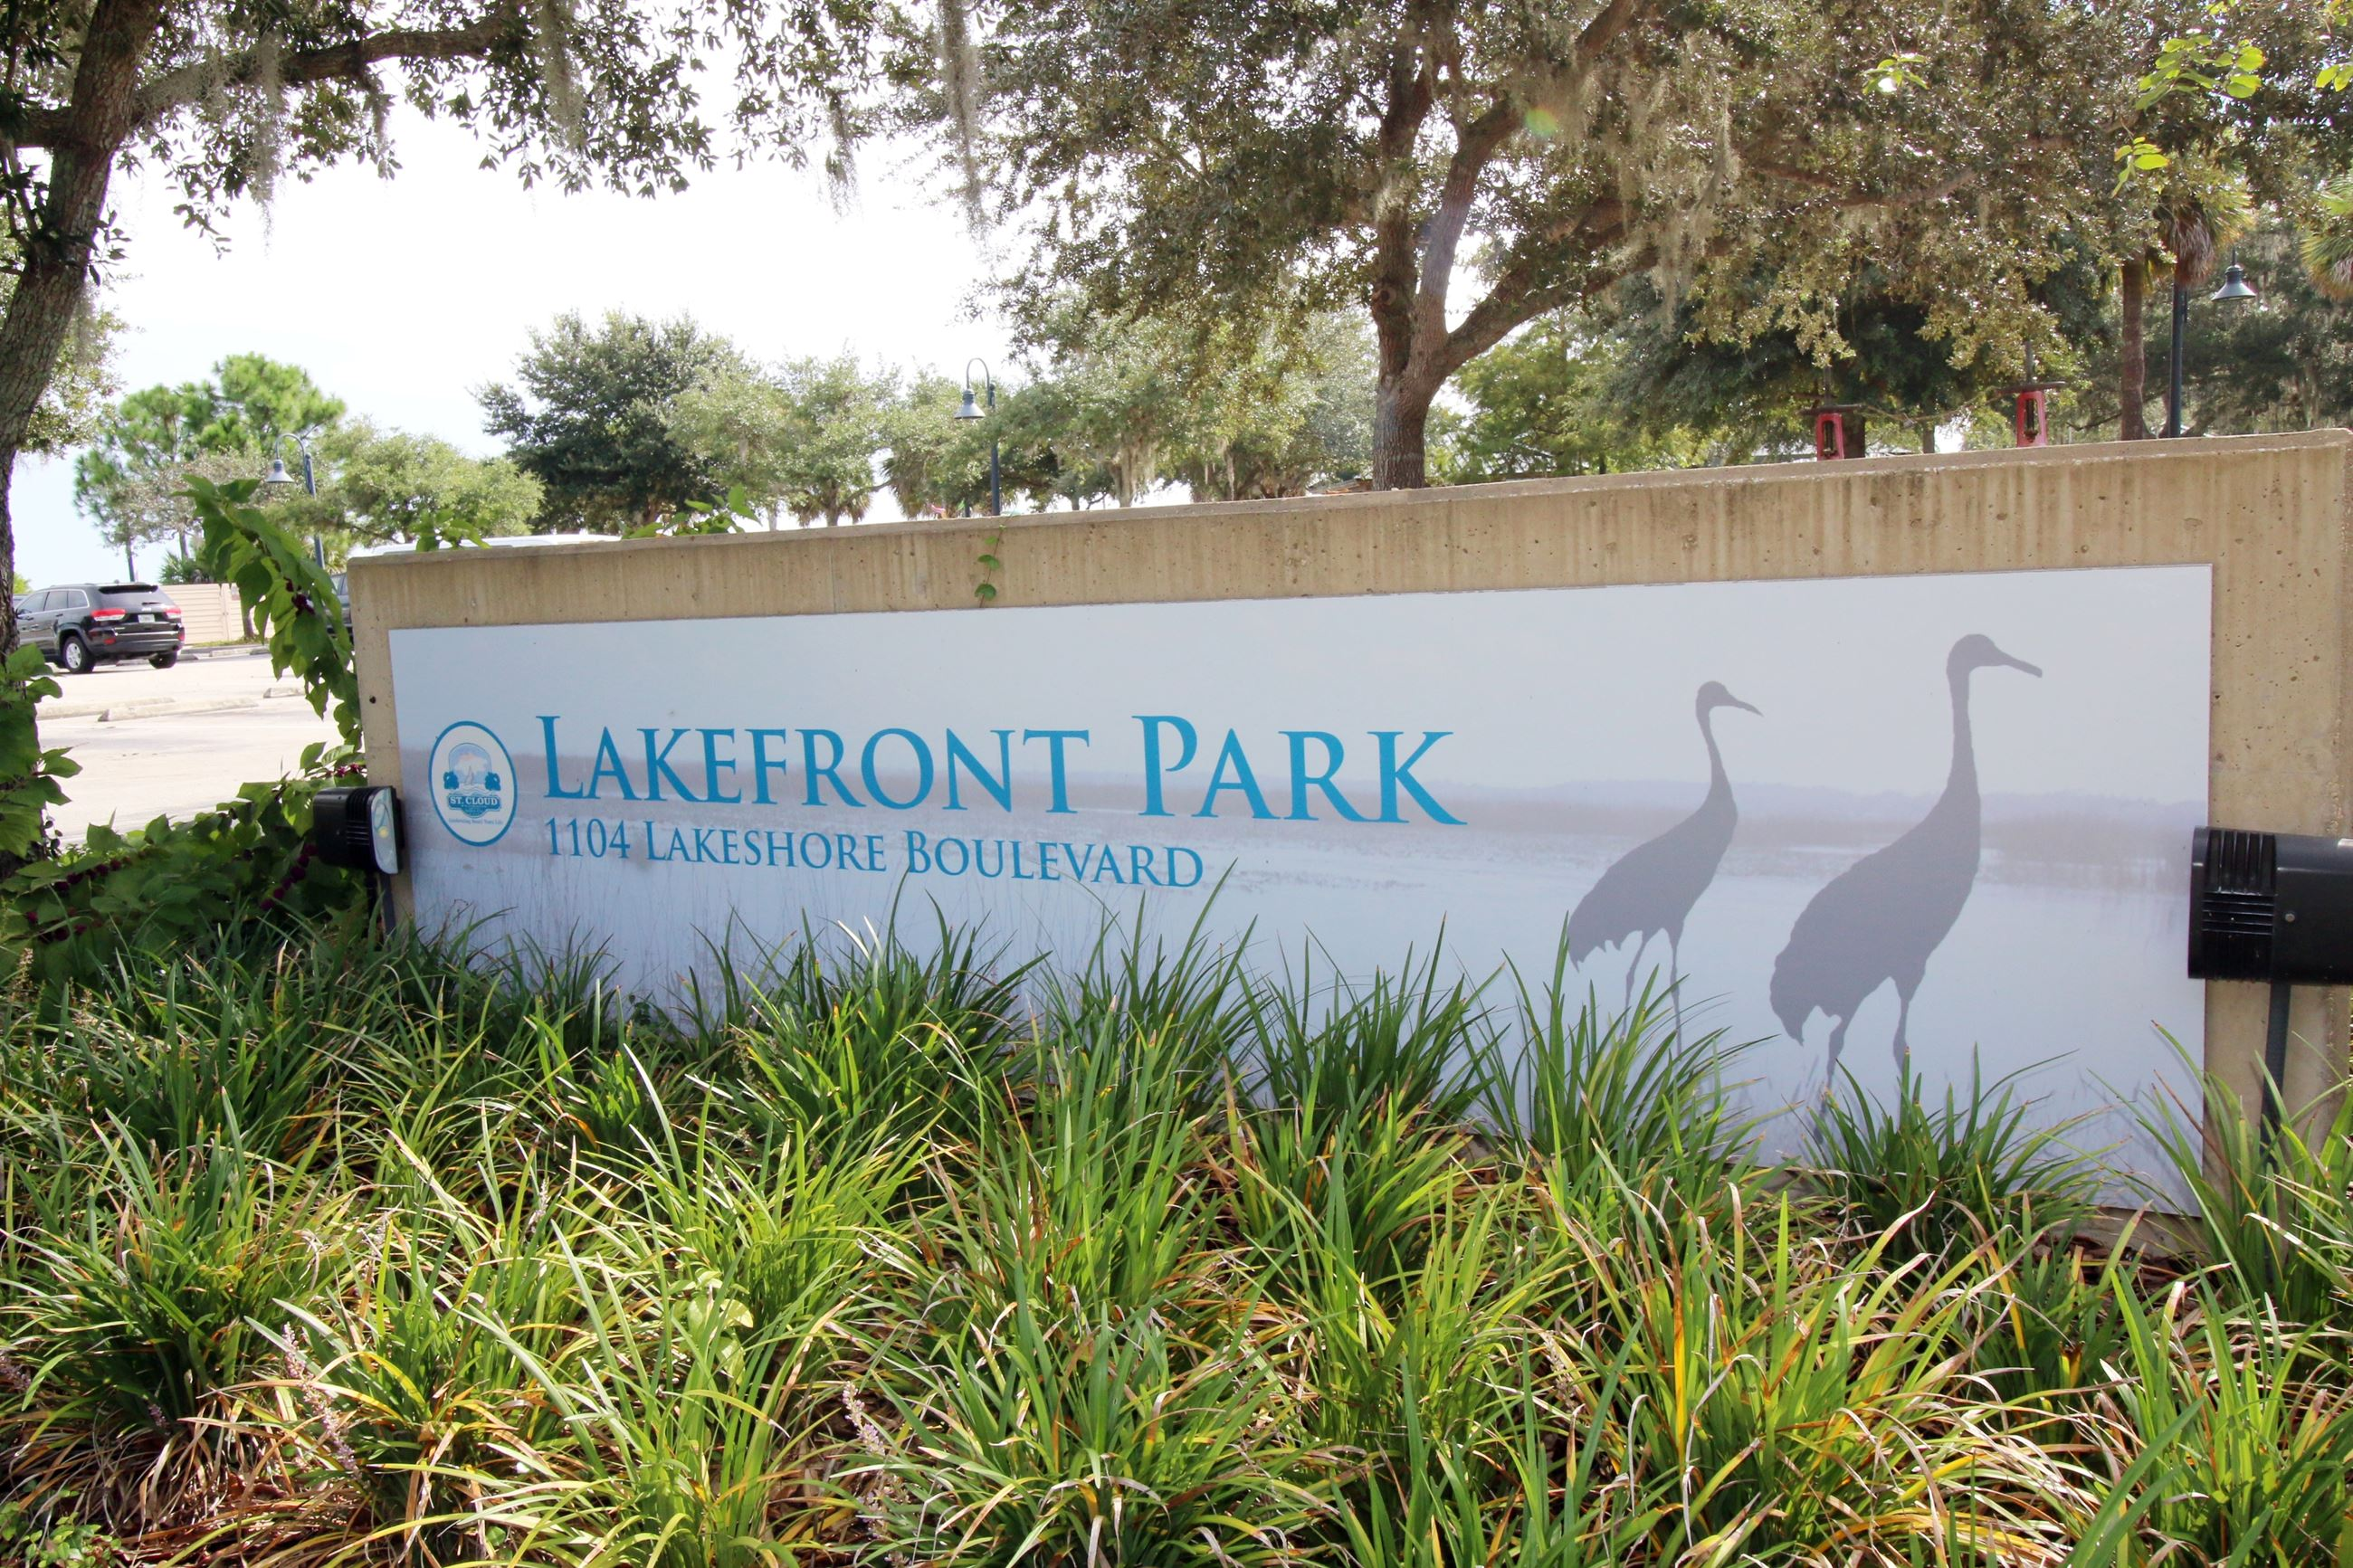 LAKE FRONT PARK SIGN PHOTO